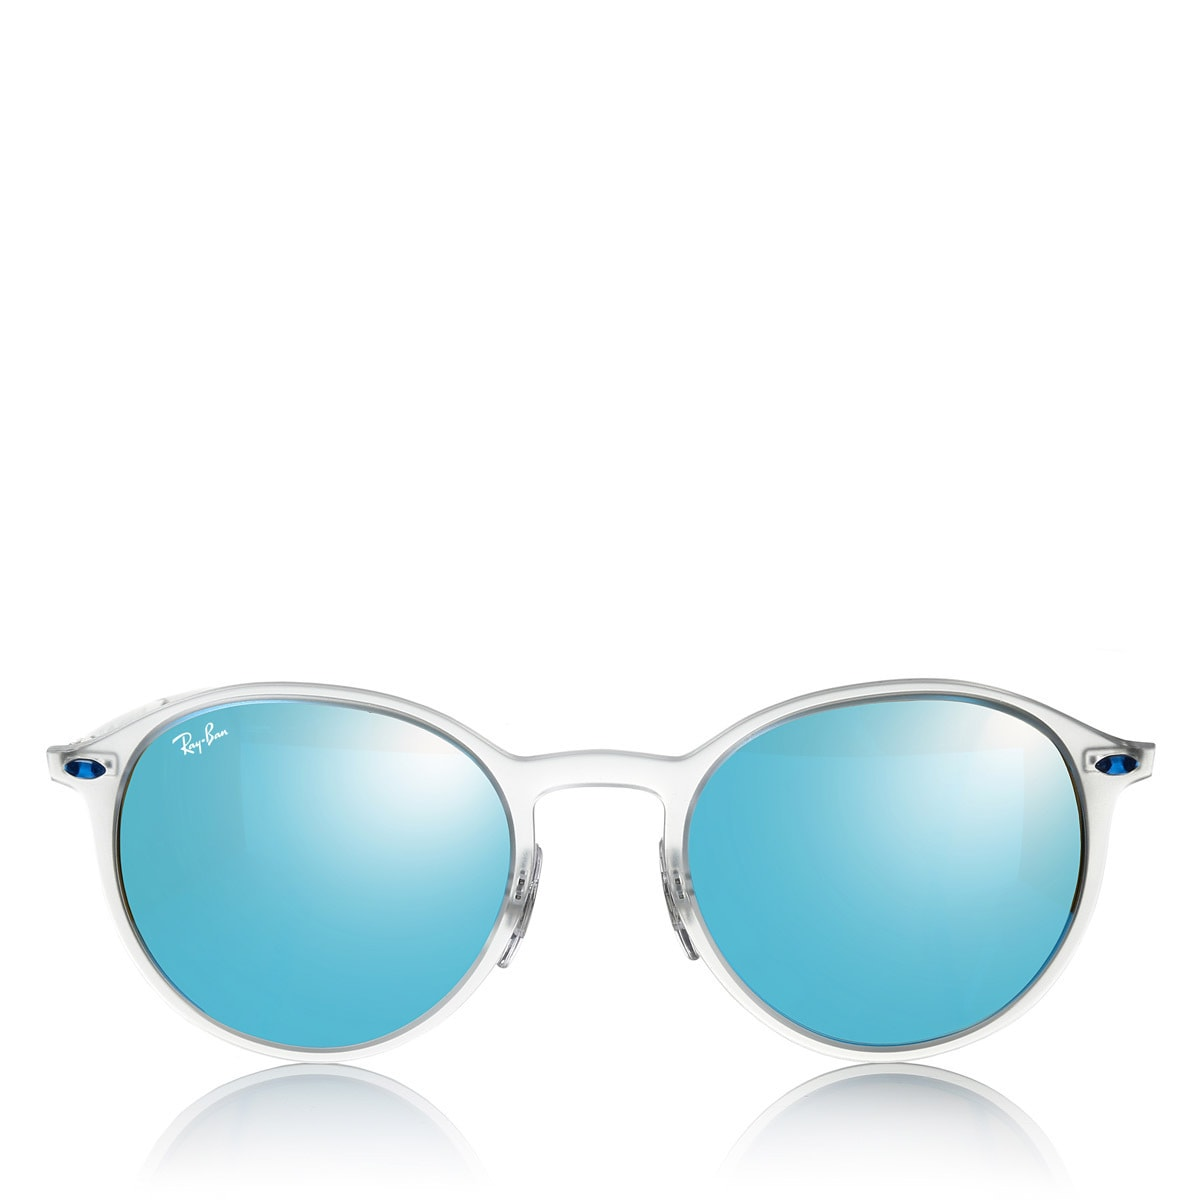 7aa6dbca9fda7 Shop Ray-Ban RB4224 Round Light Ray Unisex Transparent Silver Frame Blue  Mirror Lens Sunglasses - Free Shipping Today - Overstock - 12392905